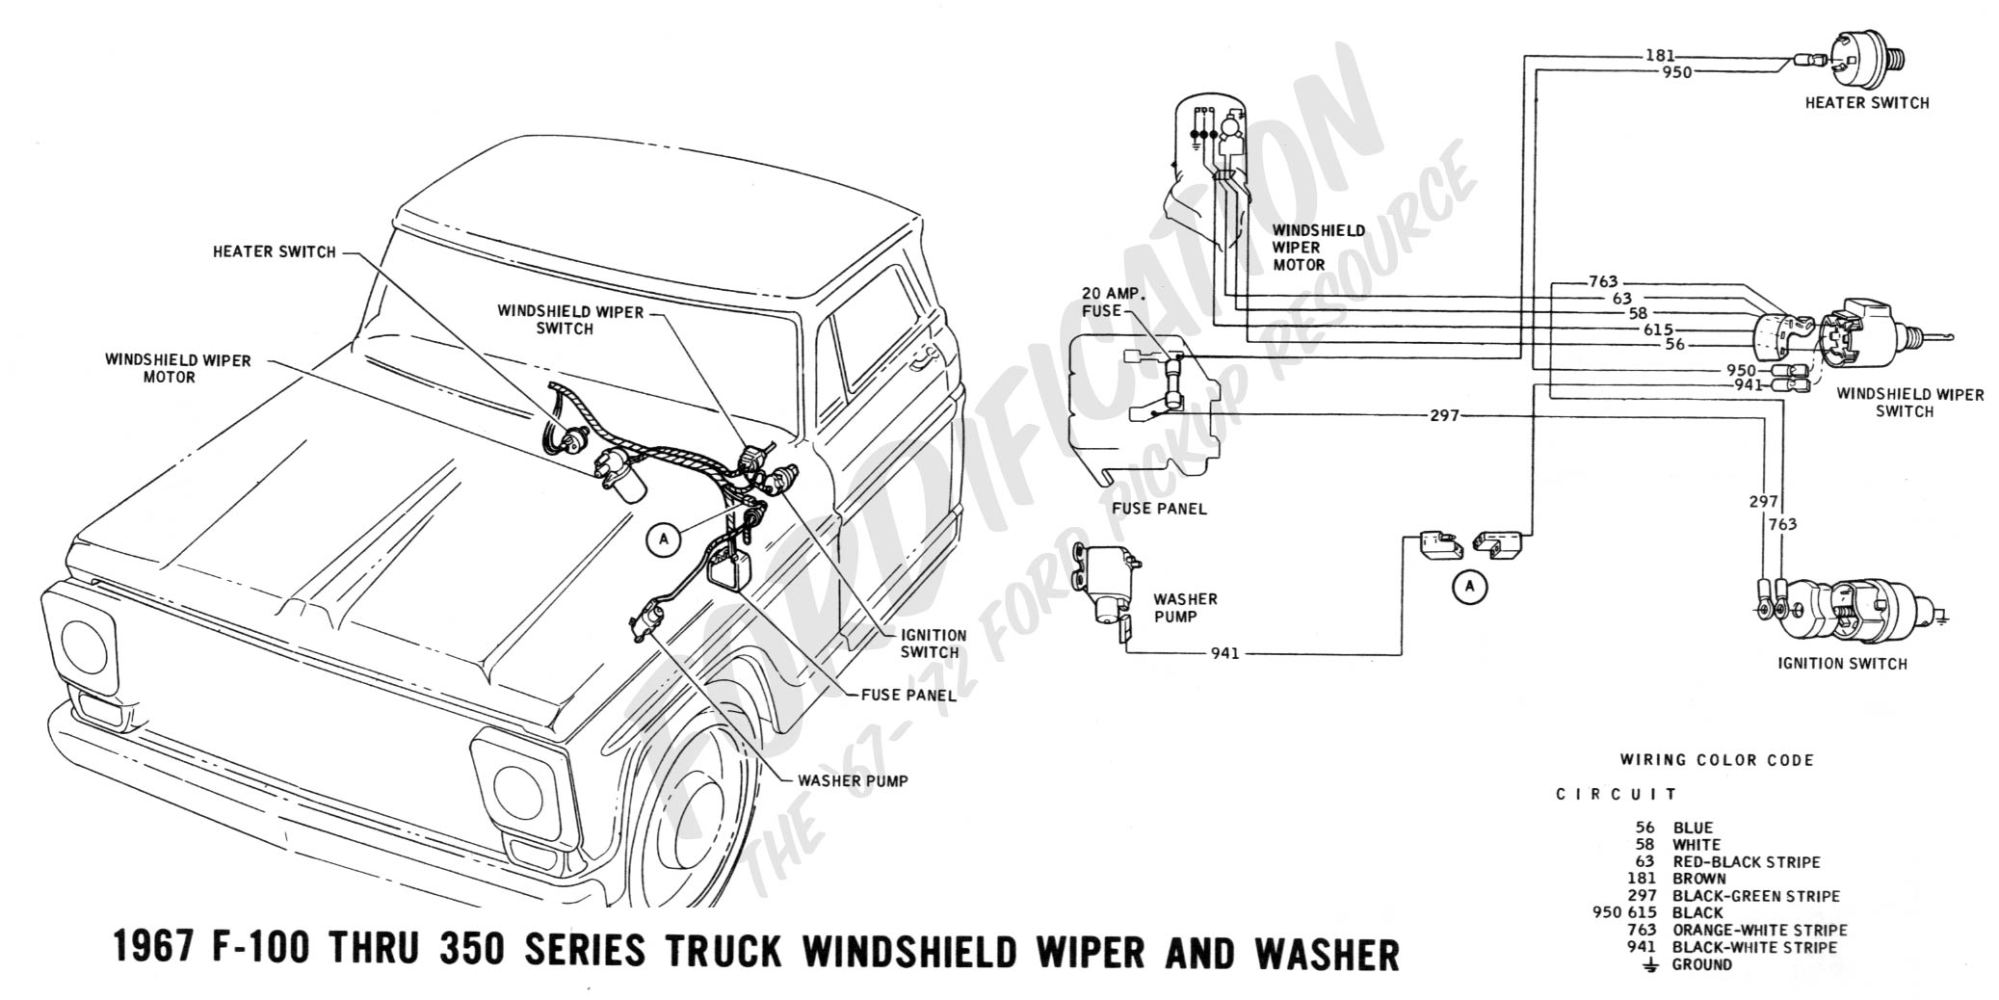 hight resolution of windshield wiper switch wiring diagram schema wiring diagram windshield wiper switch wiring diagram